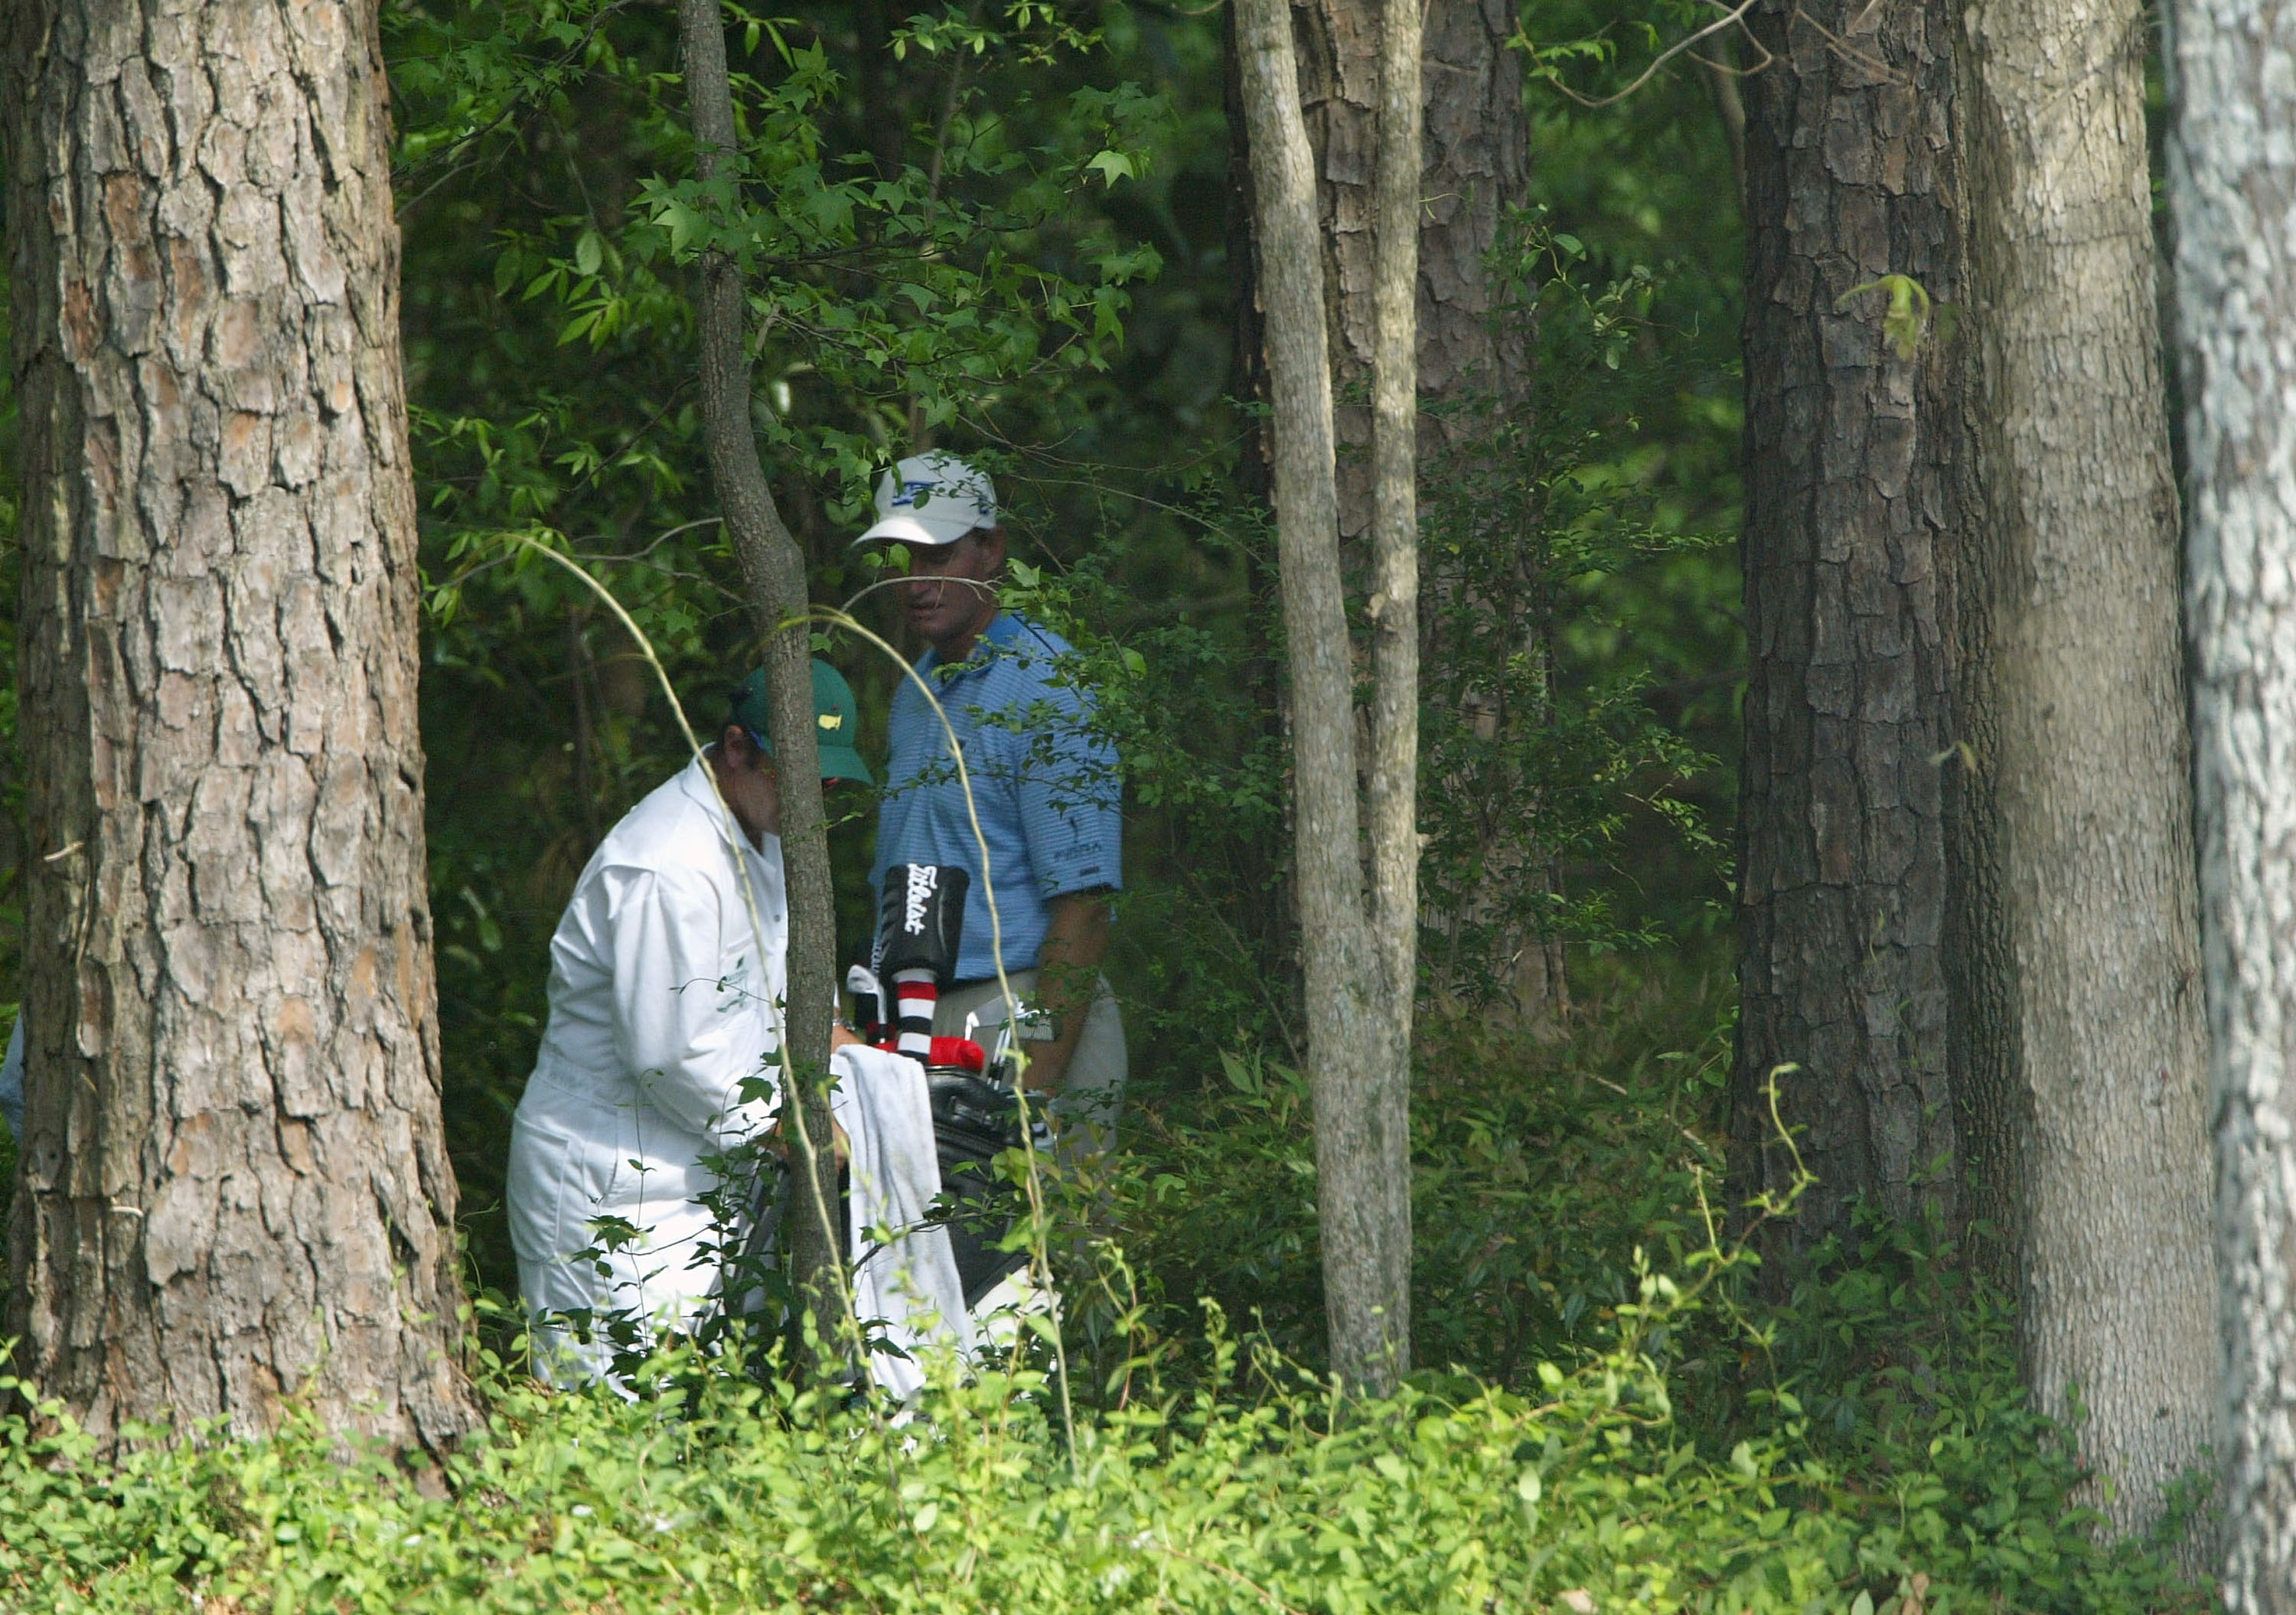 AUGUSTA, GA - APRIL 10:  Ernie Els of South Africa along with his caddie Ricci Roberts look over a shot from the trees on the 11th hole during the third round of the Masters at the Augusta National Golf Club on April 10, 2004 in Augusta, Georgia.  (Photo